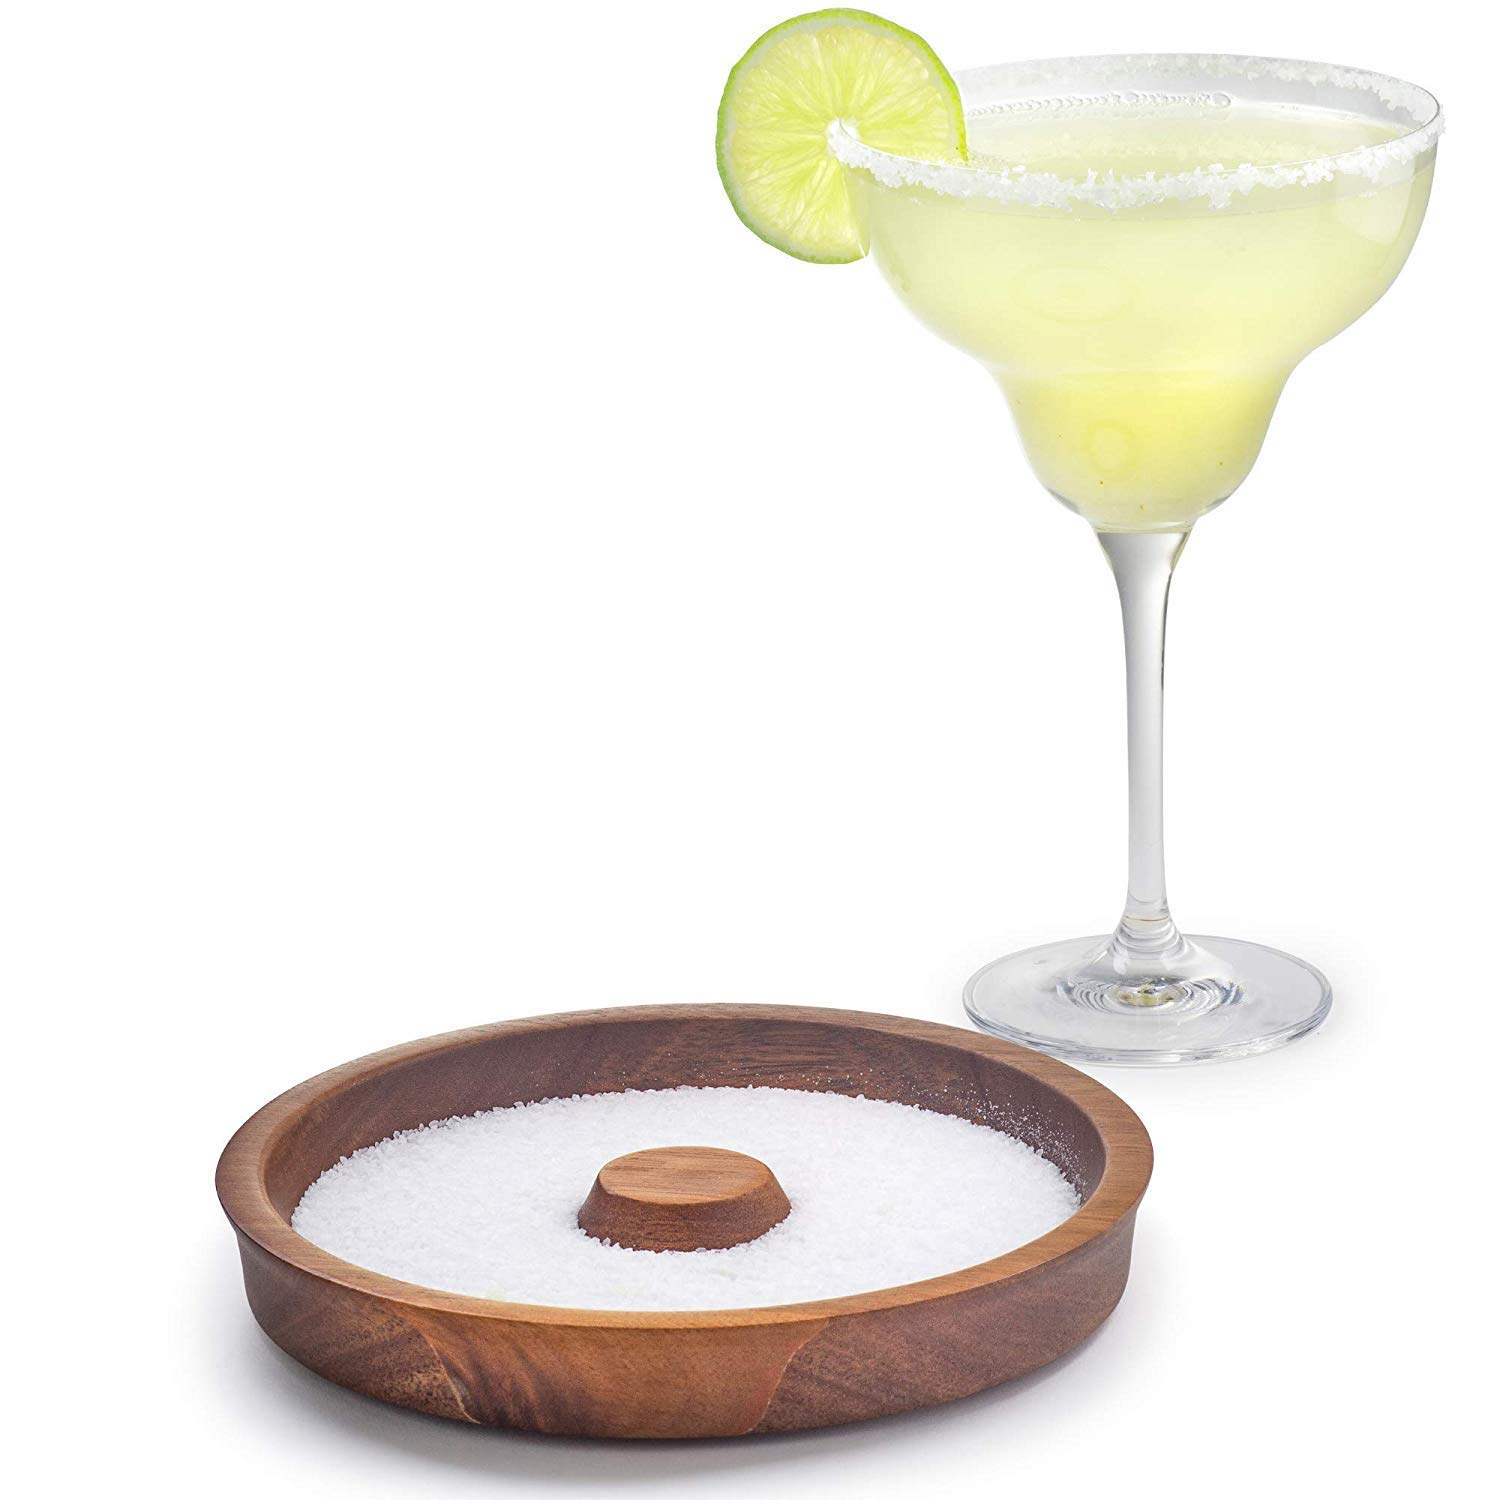 Cork & Mill Margarita Salt Rimmer, Acacia Wood Glass Rimmer, Sugar and Salt Rimmer for Wide Glasses up to 5.5 Inches